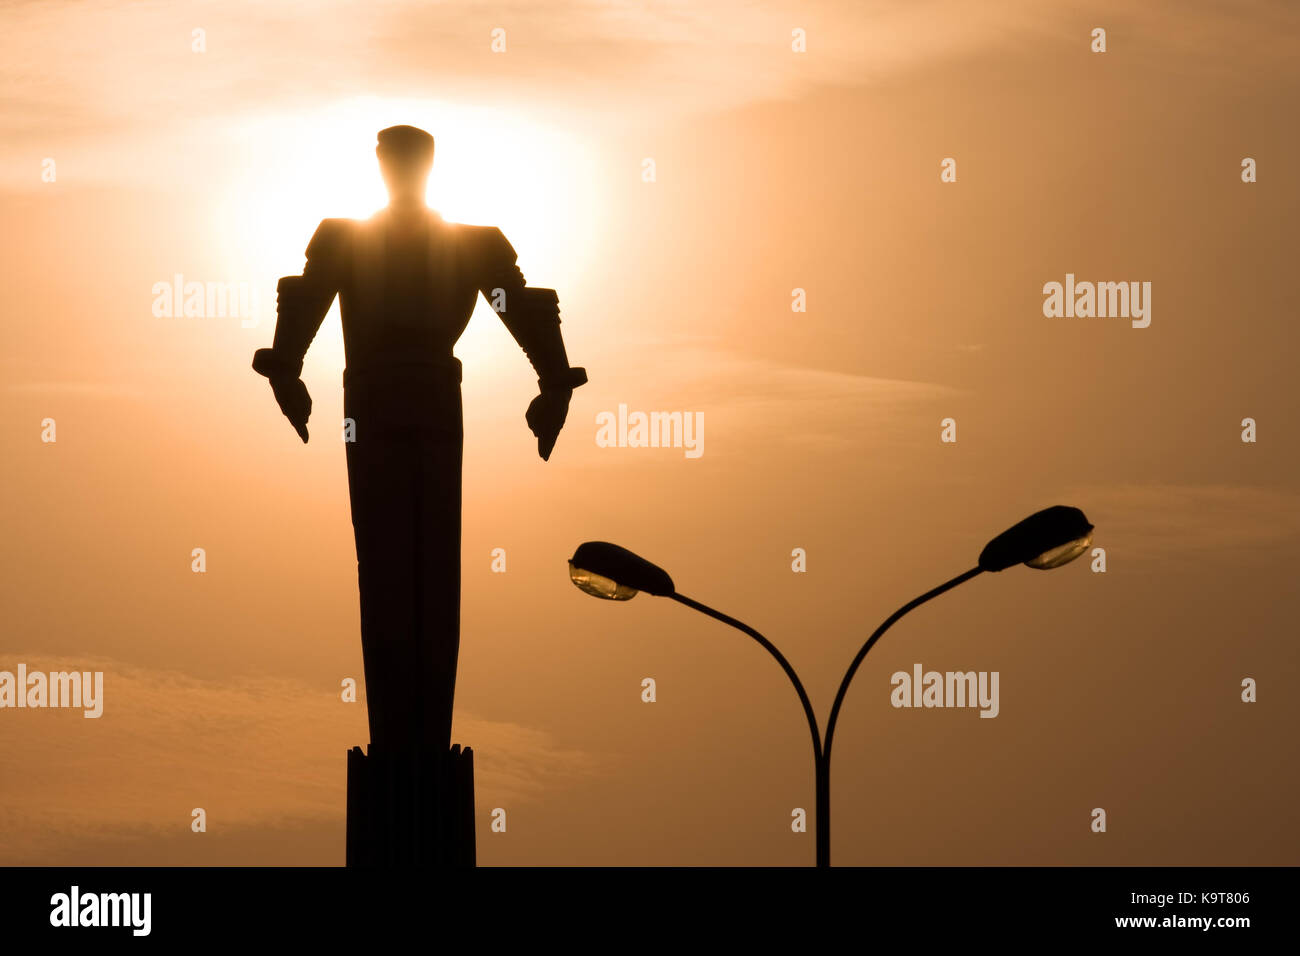 A monument to cosmonaut Yuri Gagarin in Moscow at sunset. Silhouette of the monument against the background of the - Stock Image